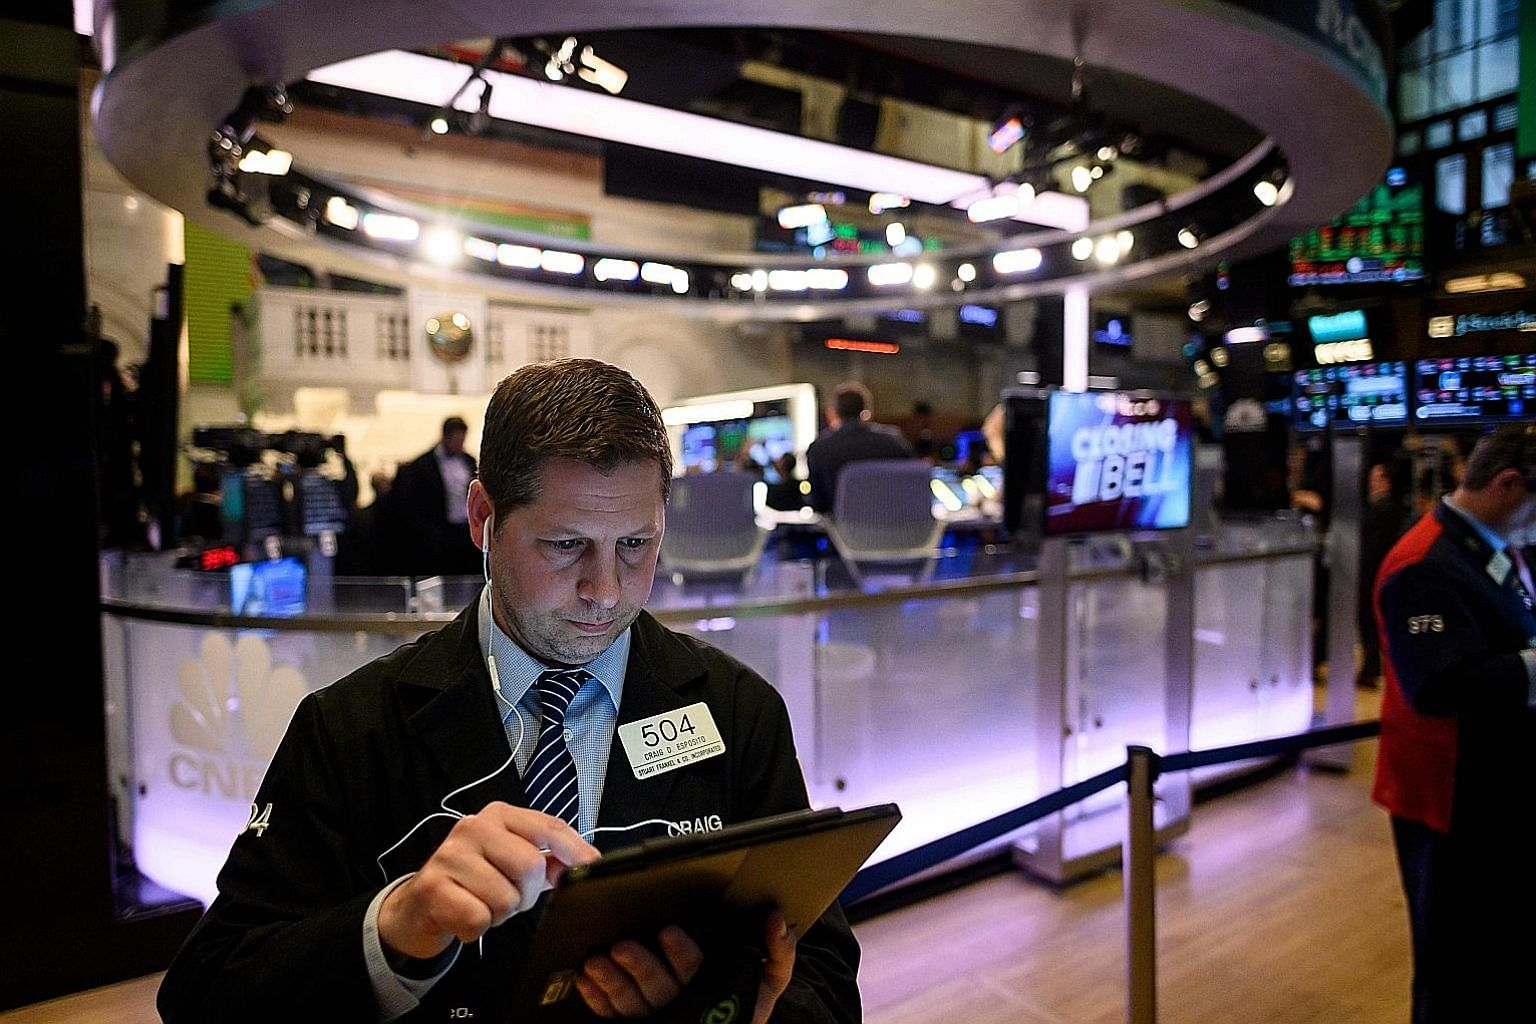 A trader working ahead of the closing bell on the floor of the New York Stock Exchange last month. Even though the US earnings season has kicked into gear, traders will also be listening in on developments from the US and Japan trade talks today and